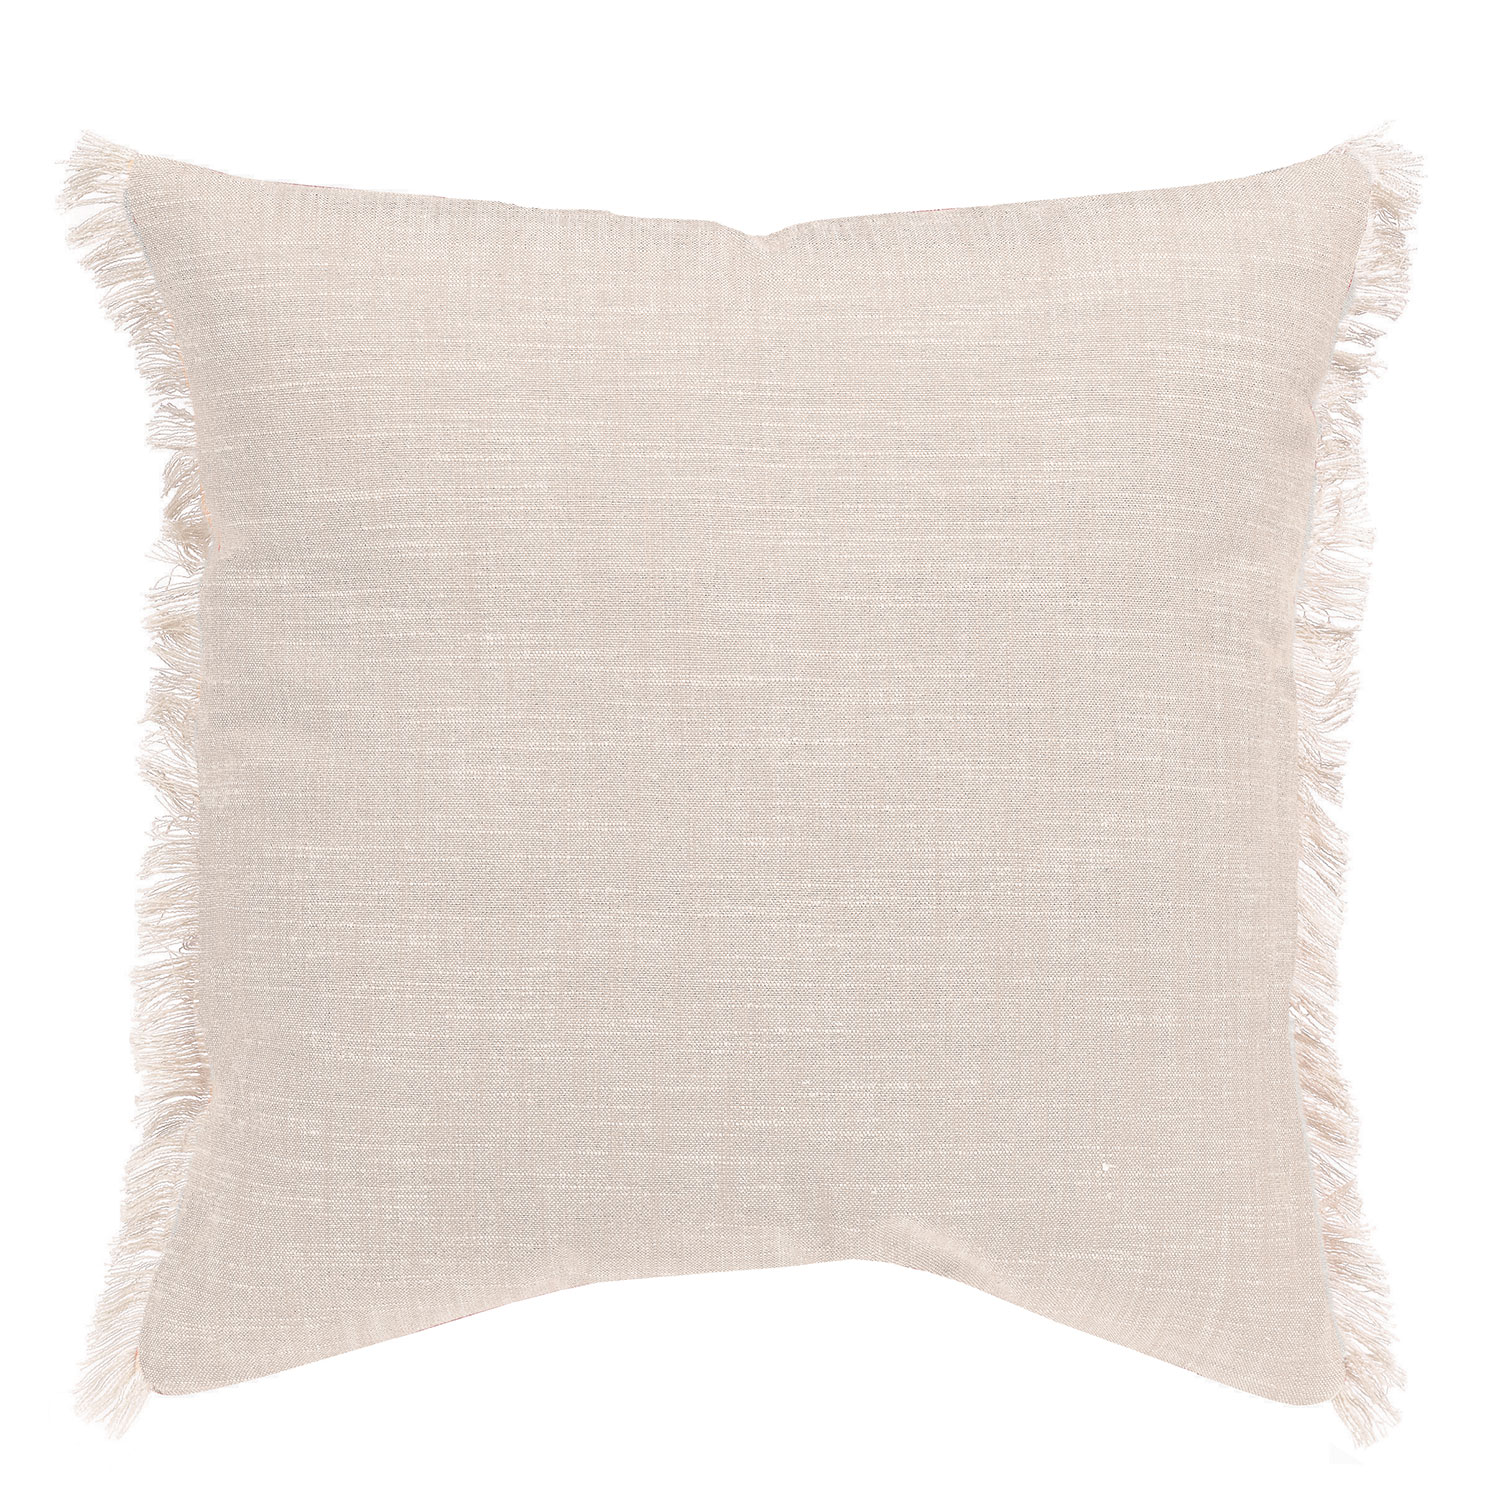 Coussin  en coton ficelle 45 x 45 (photo)